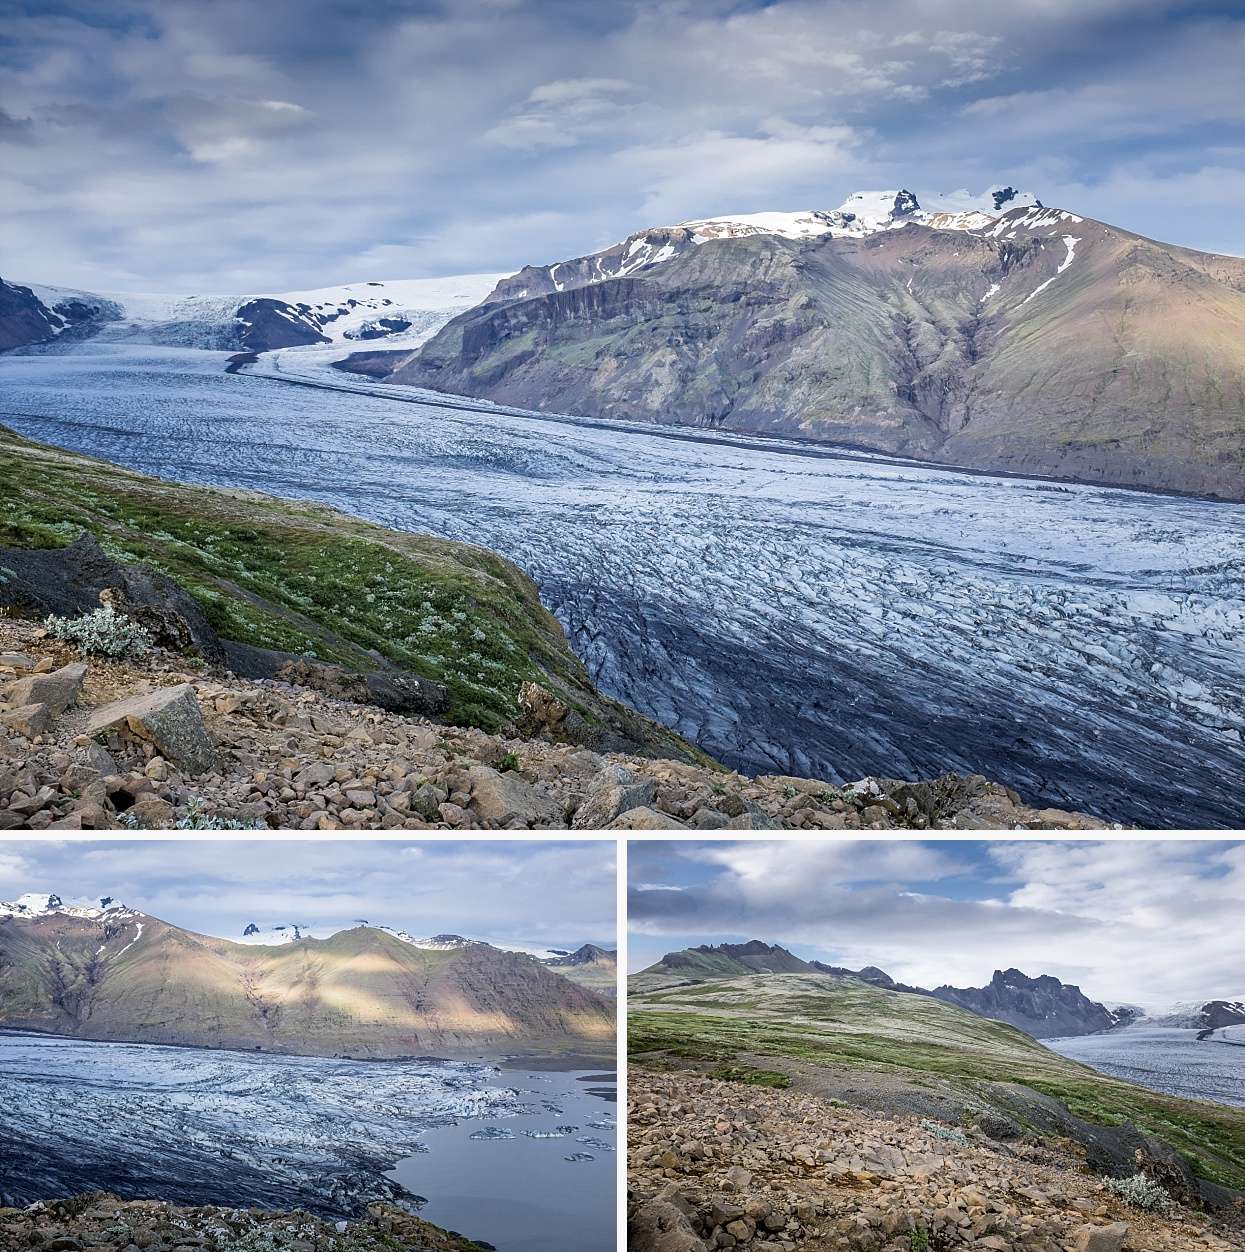 The scenery around Skaftafell is full of stark contrasts. The various glacial tongues are flanked by jagged mountains, with the glacier-topped peak of Hvannadalshnjúkur rising highest. Evidence abounds of the erosive forces exerted by glacial ice and rivers. From the time of the first sagas, this ice has variously advanced or retreated, reaching farthest around 1890, since when it has retreated.